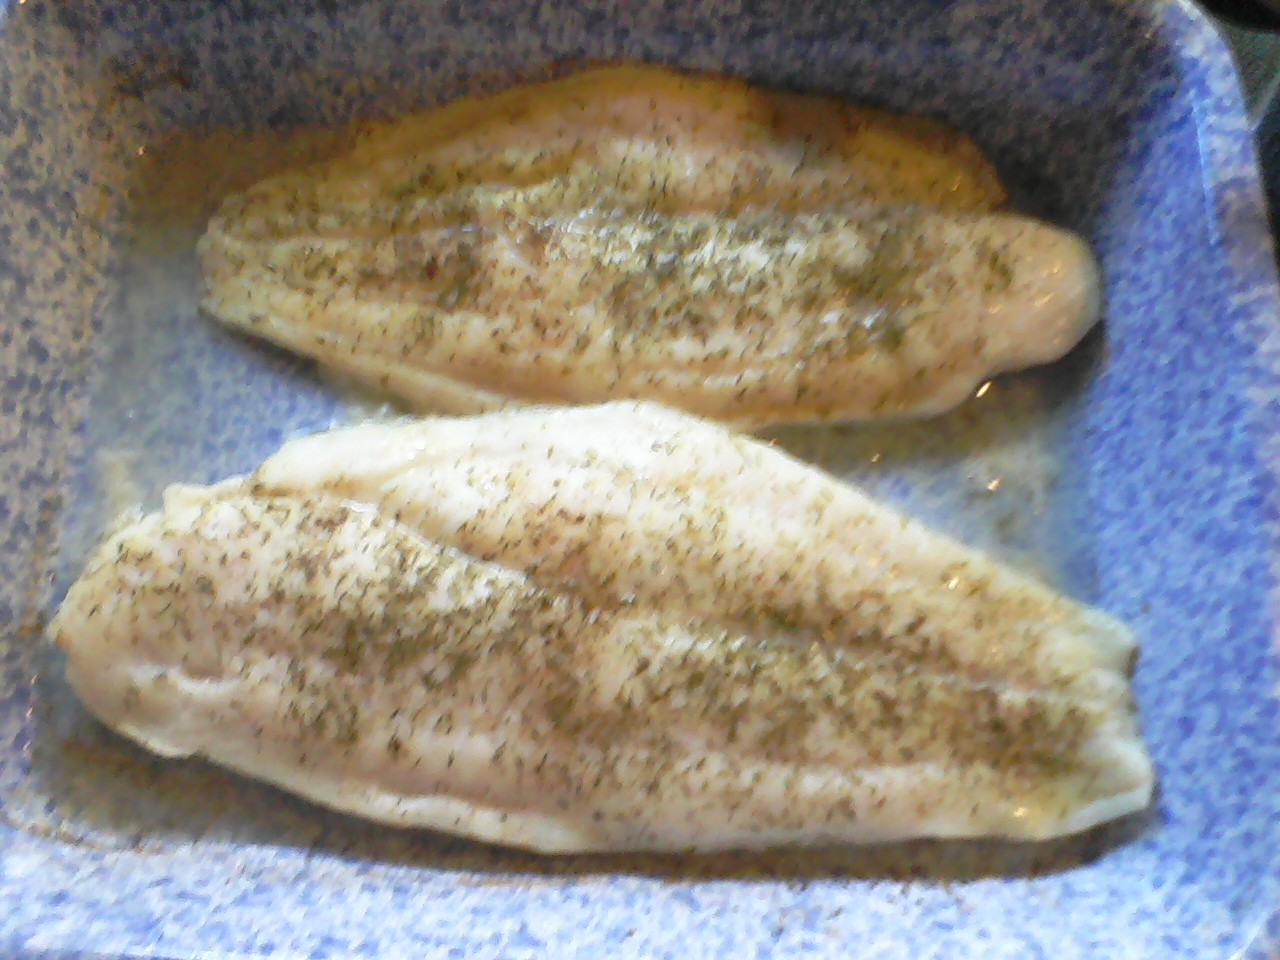 Ct on a budget fish on friday baked swai for Baked swai fish recipe